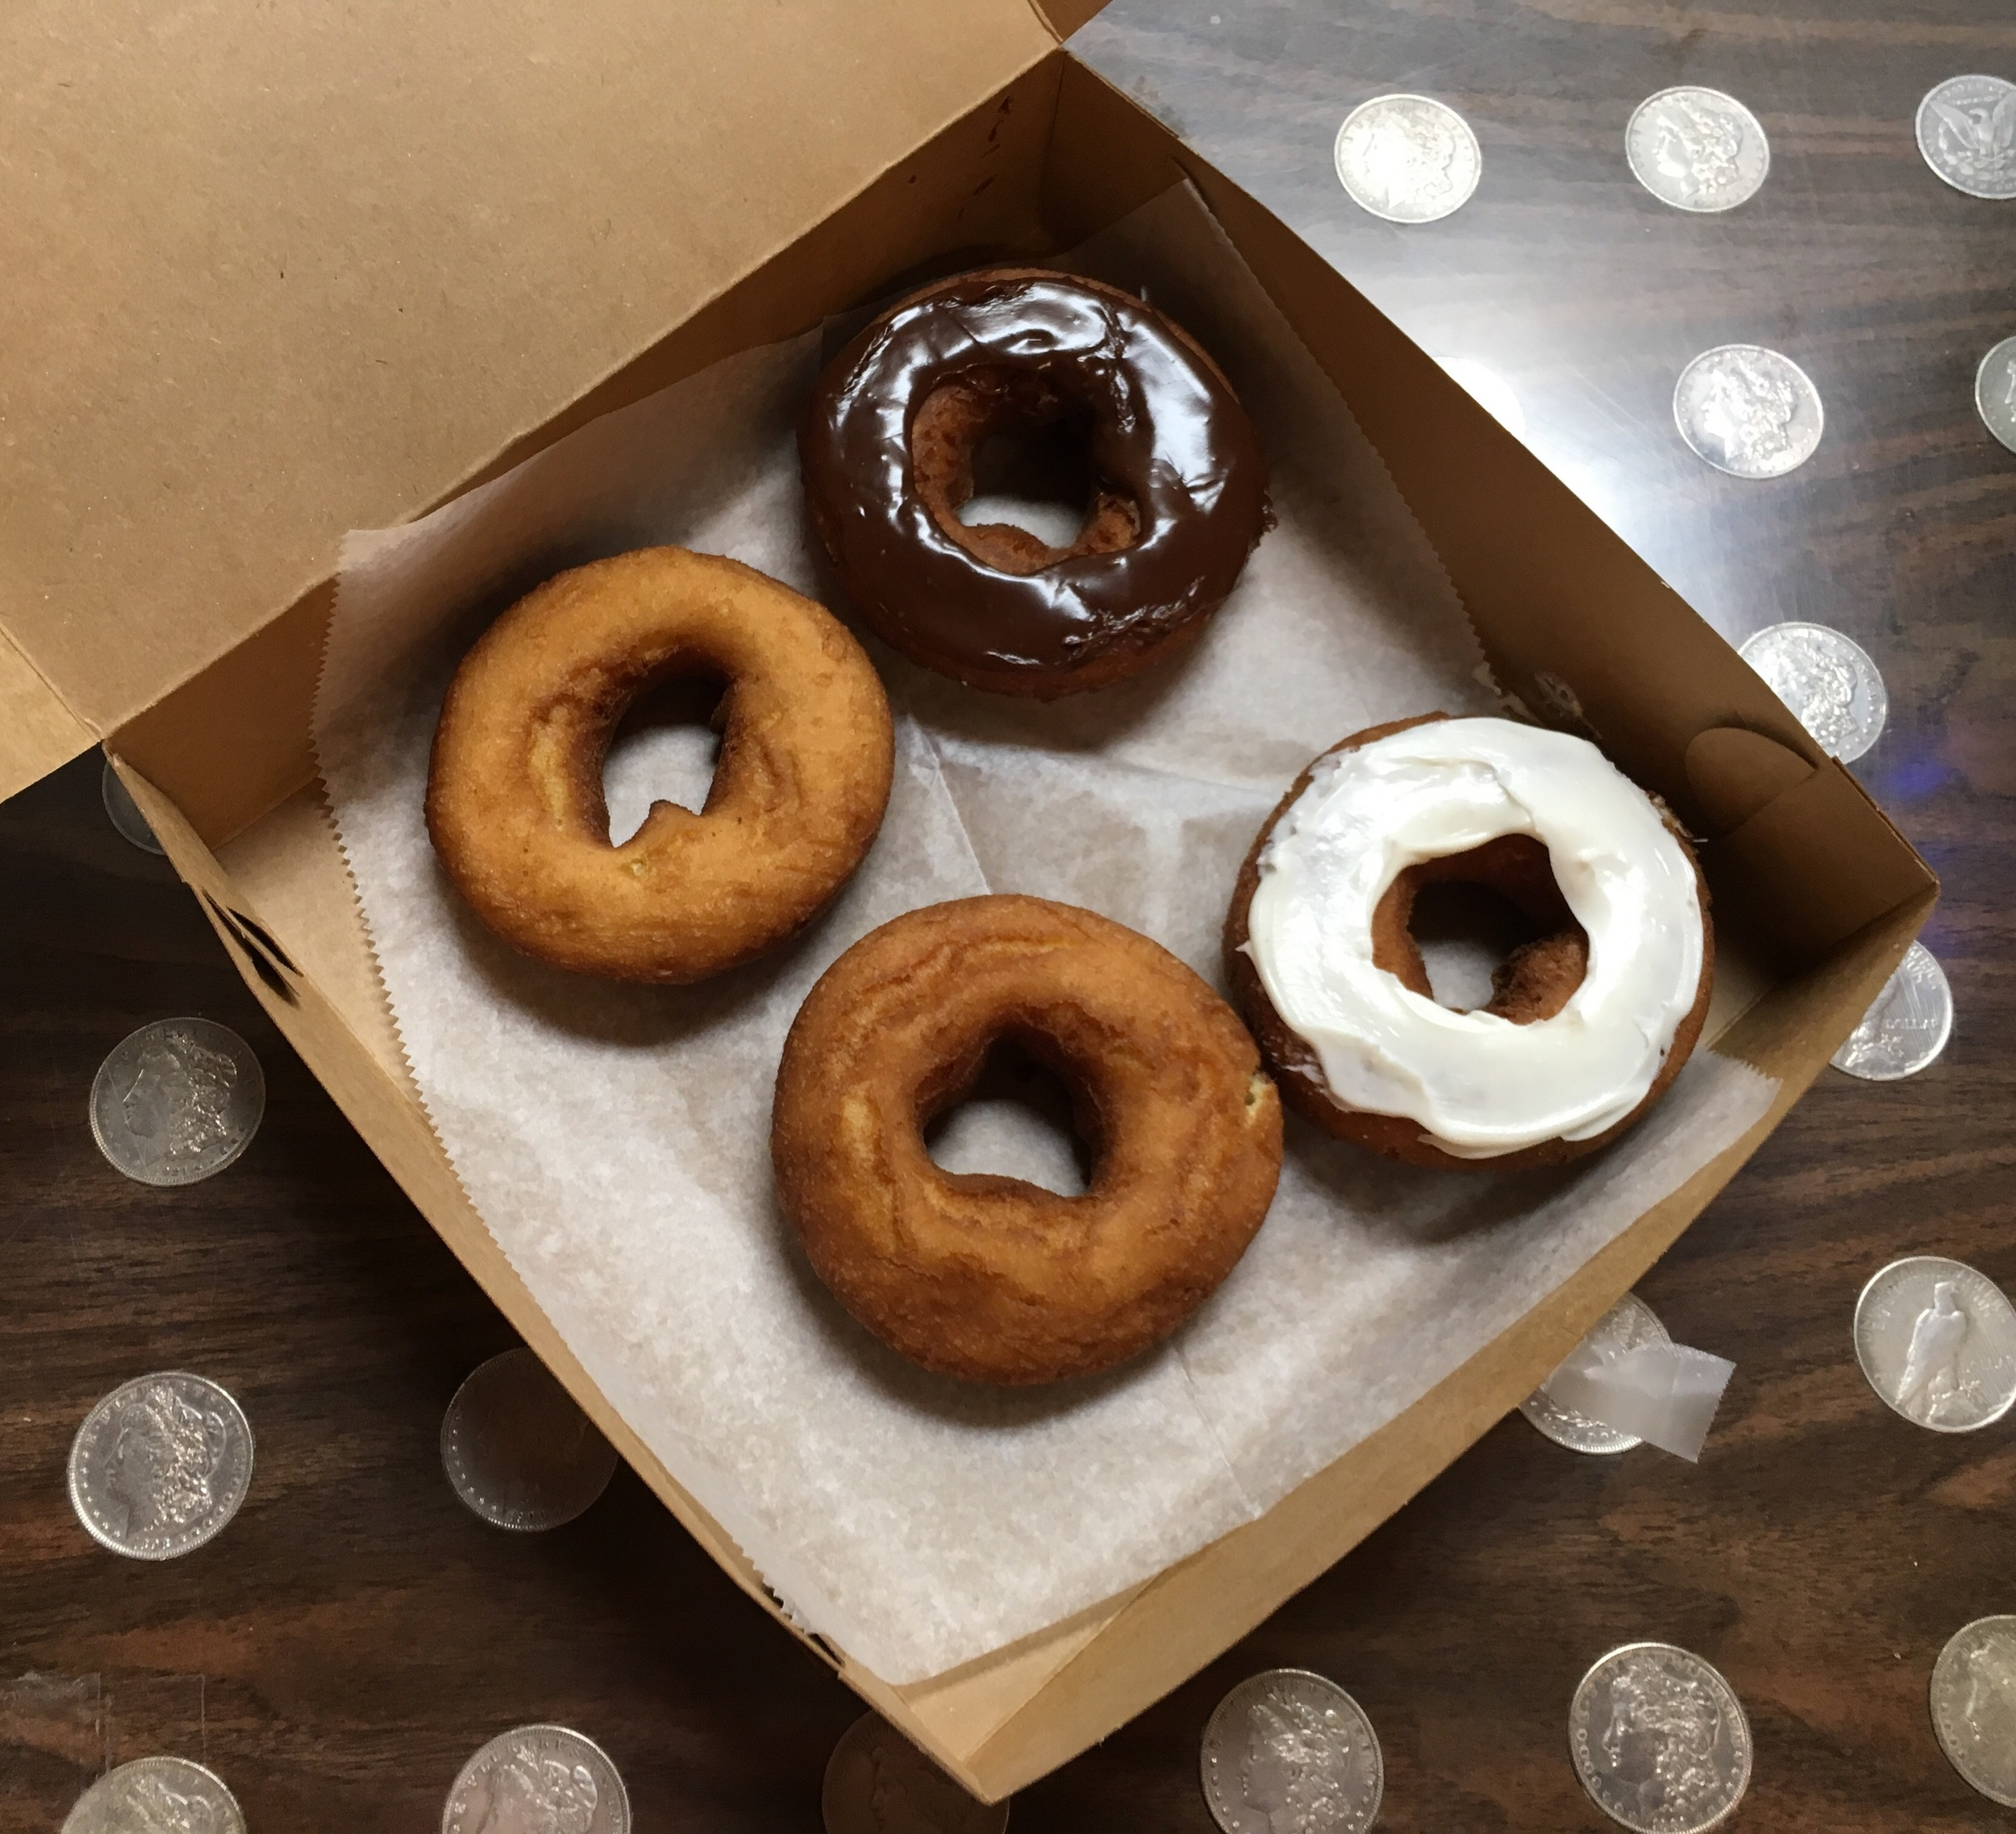 There's a reason the donuts at Wall Drug are famous! Yum!!!